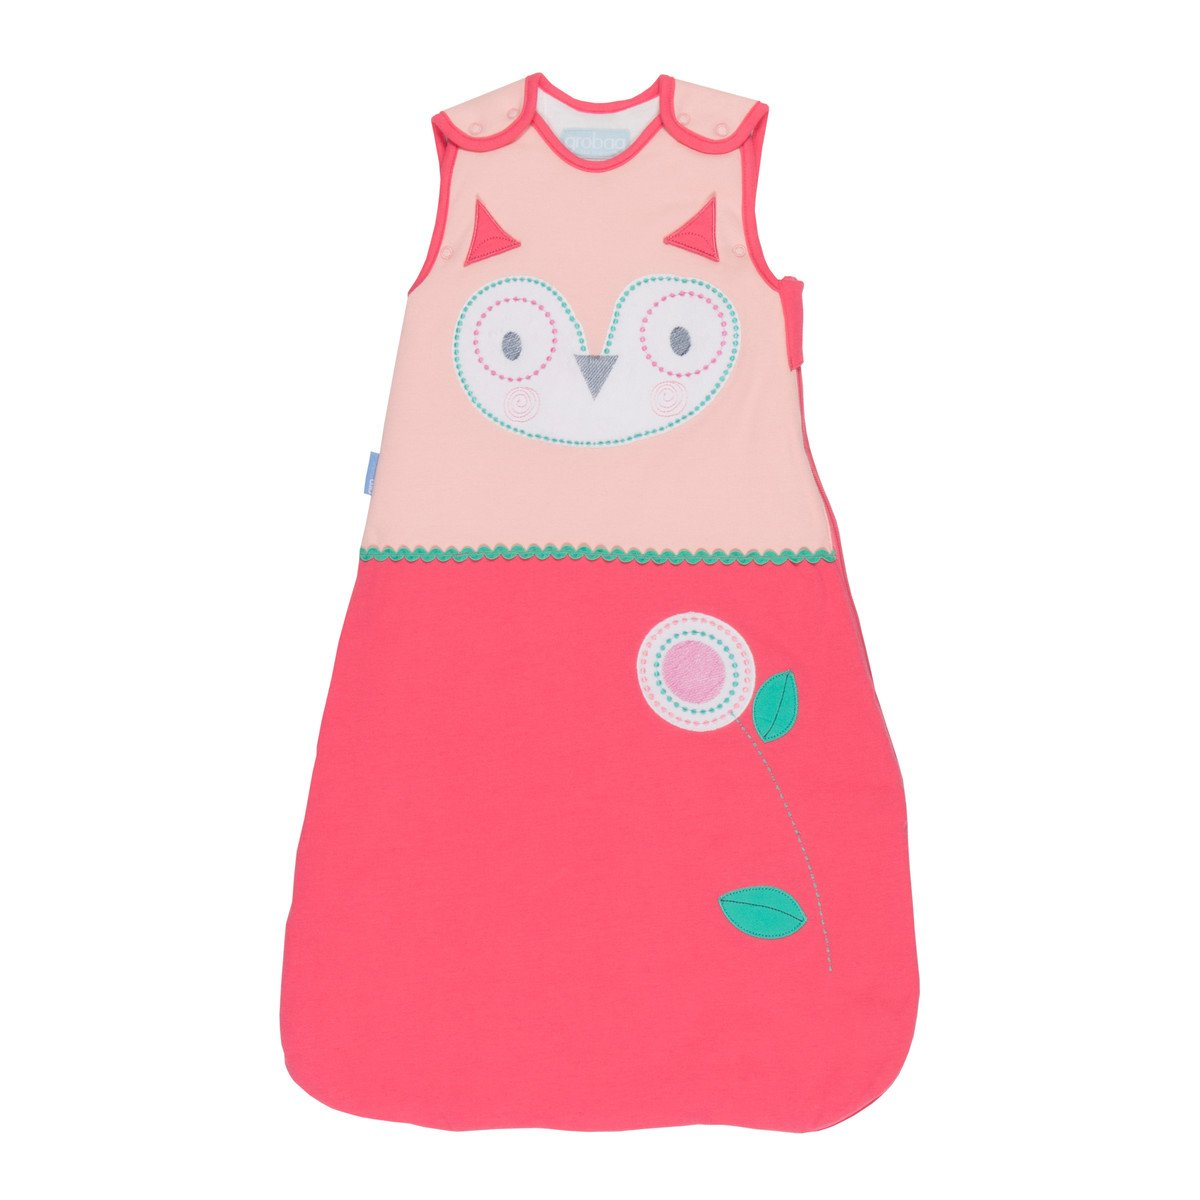 Grobag What a Hoot saco 0 – 6 meses, 1 tog GRPRB AAA4213